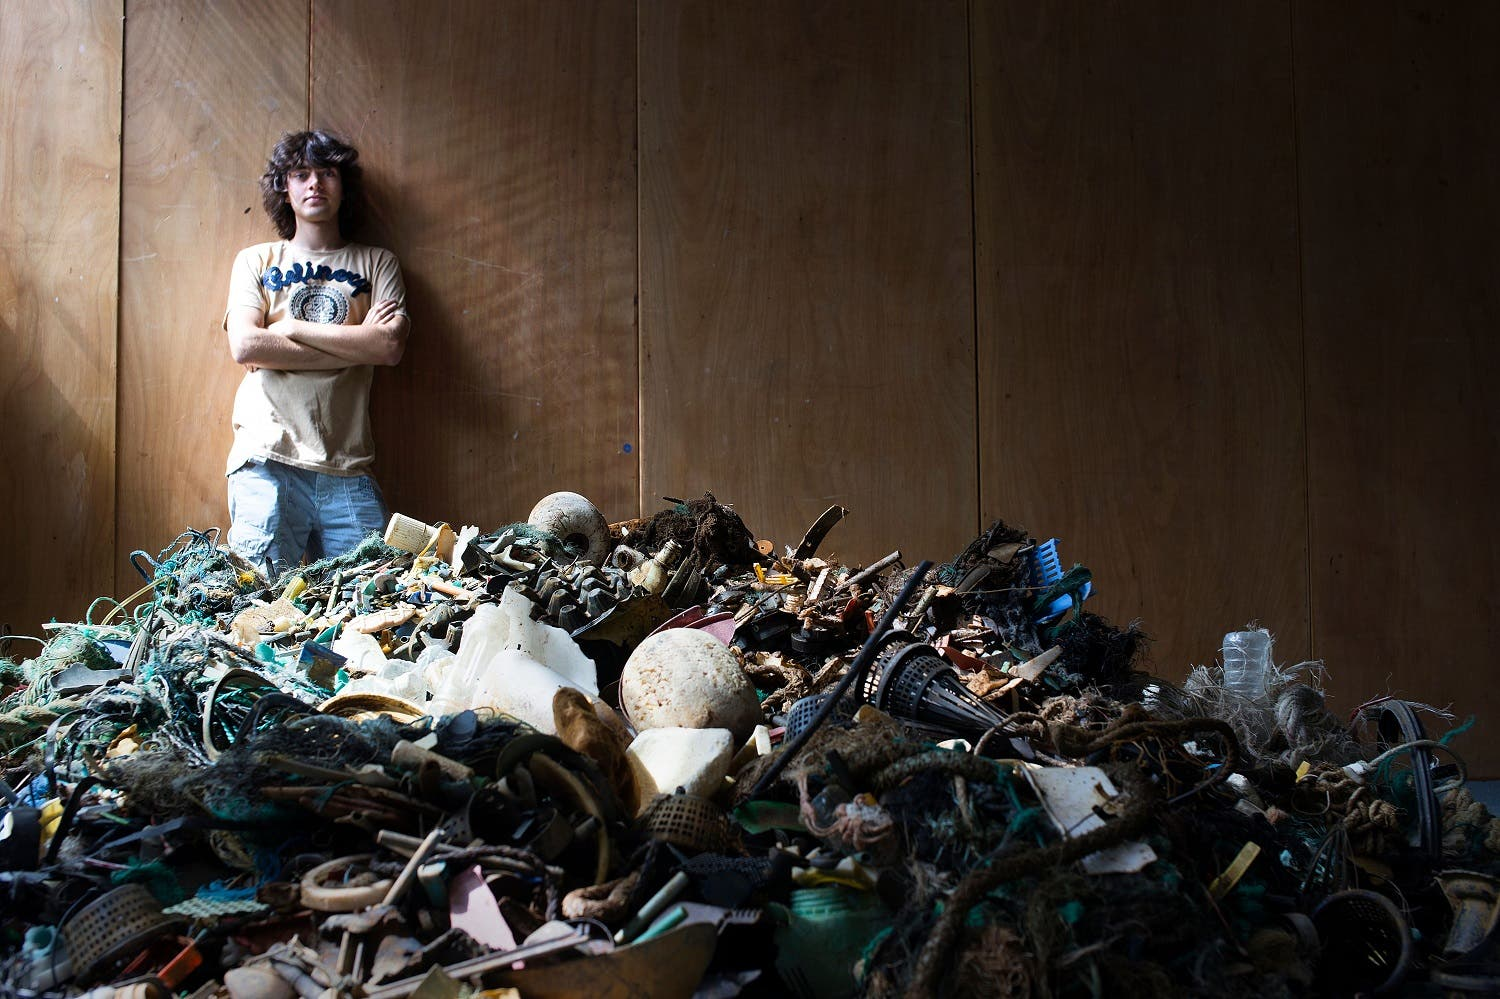 Boyan Slat posing by a pile of garbage found in the sea, in October 2013 in Delft. (AFP)